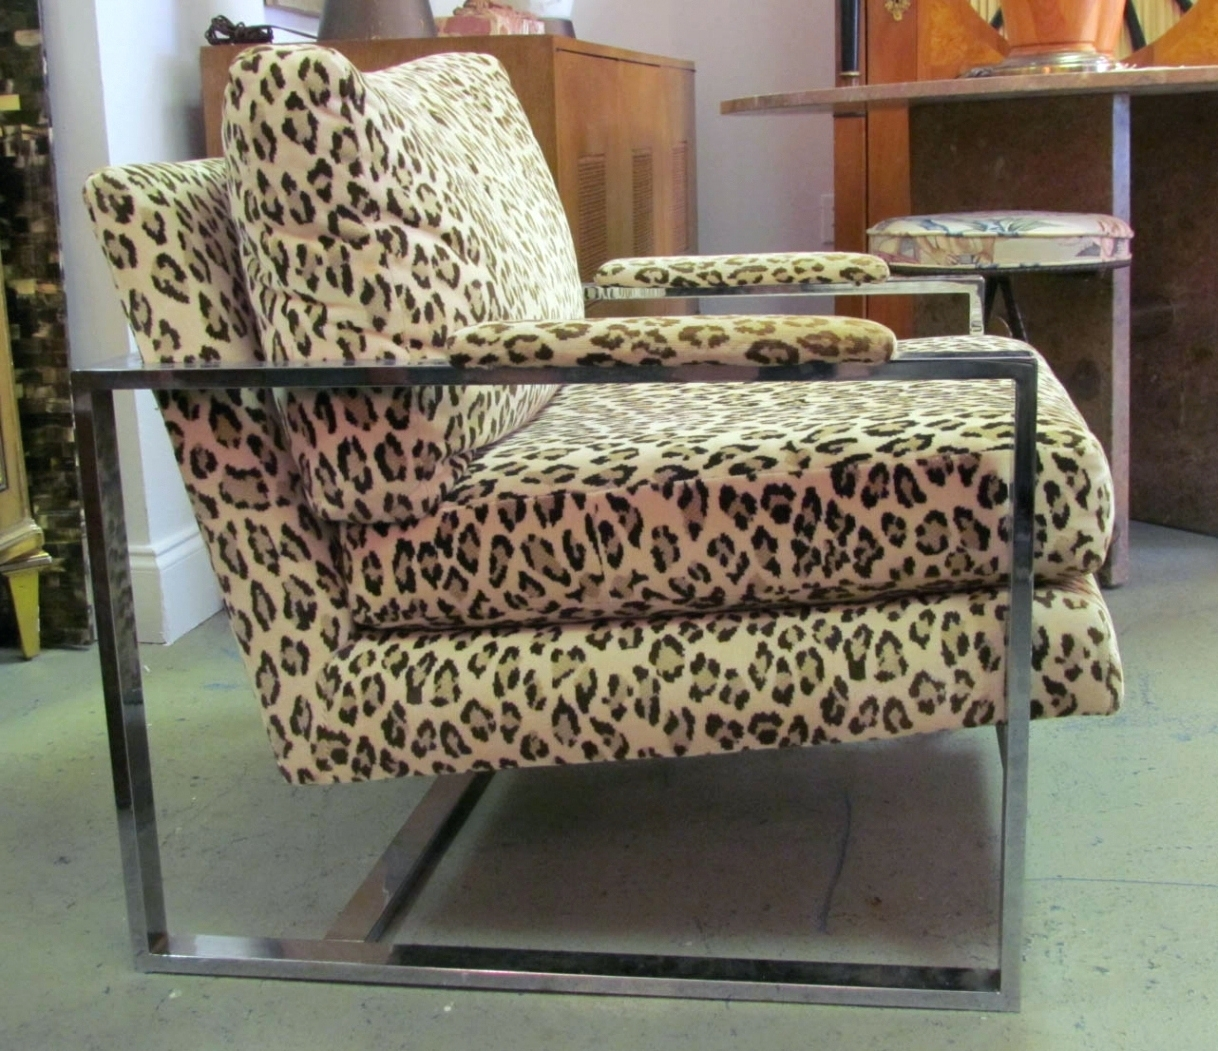 Fashionable Animal Print Lounge Chair Lounge Furniture For Teen Girls Ideas Of Inside Zebra Print Chaise Lounge Chairs (View 12 of 15)